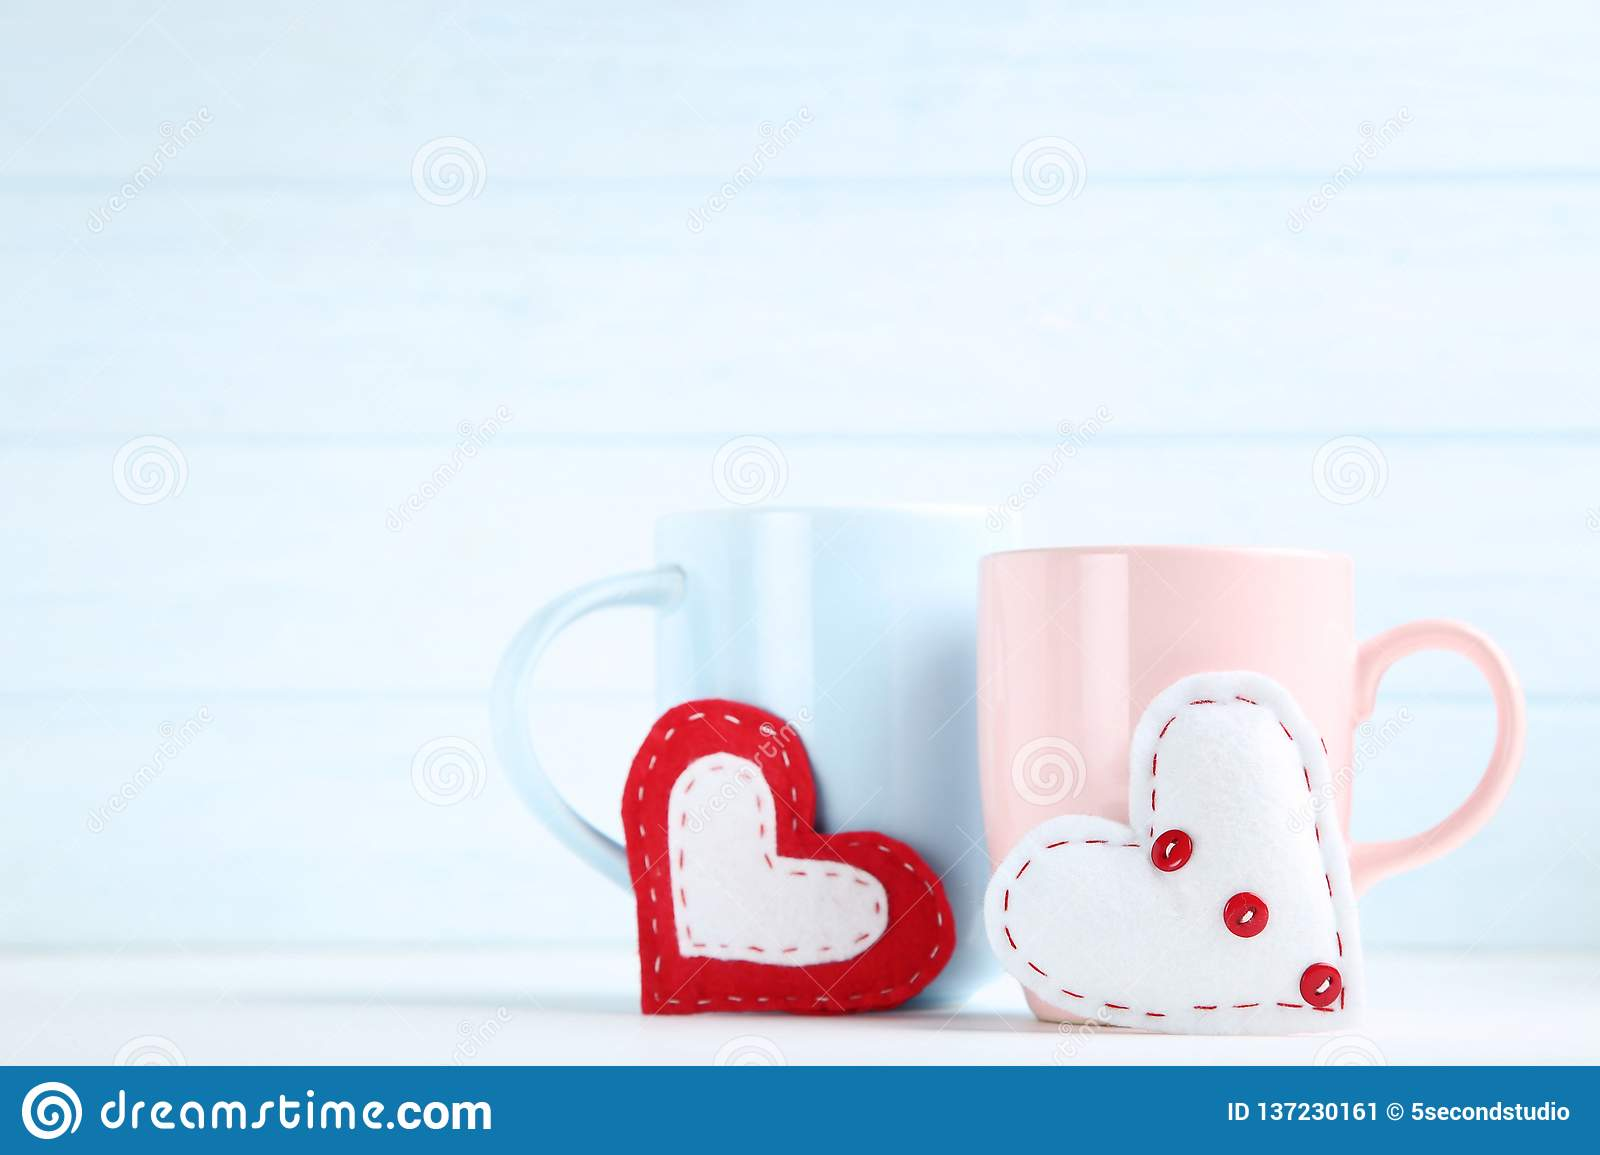 Hearts with cups